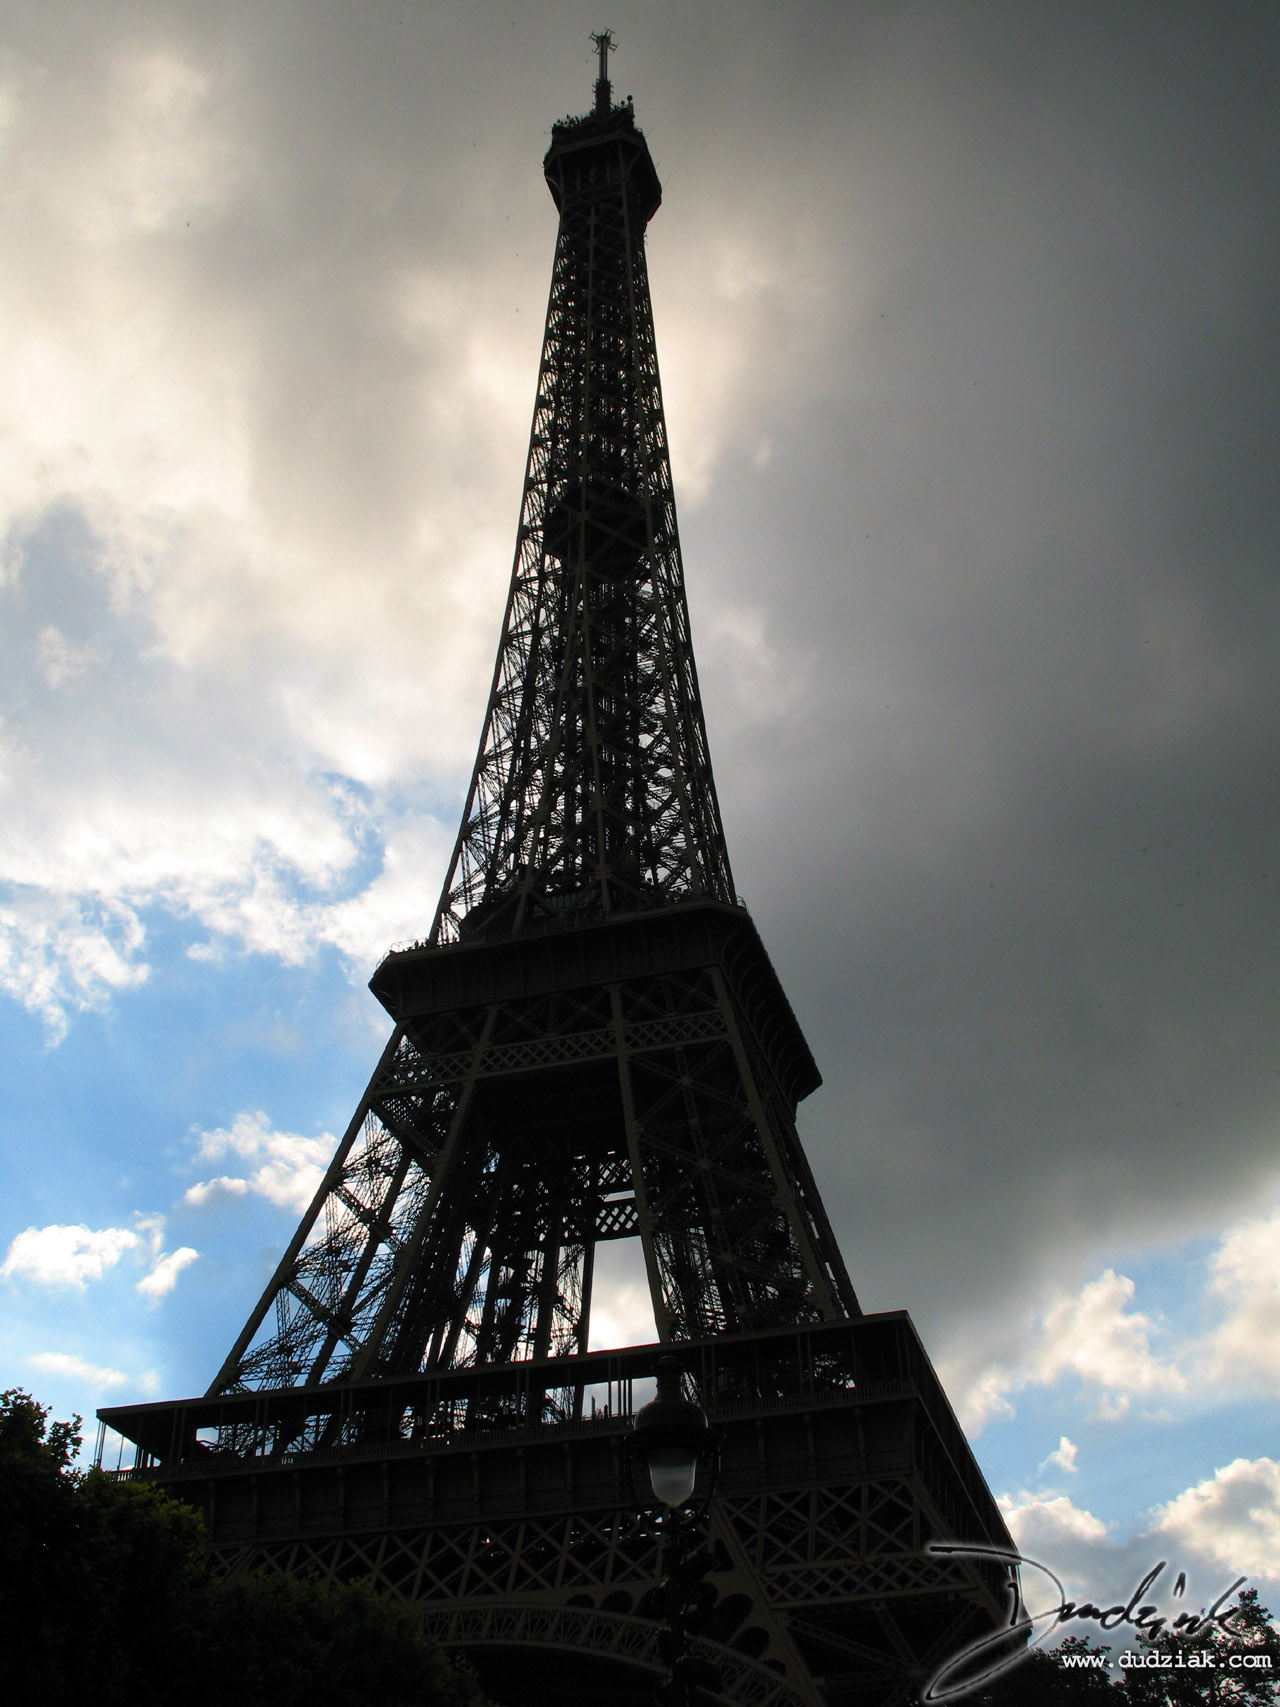 Clouds,  Eiffel Tower,  Paris France,  Overcast,  Cloudy